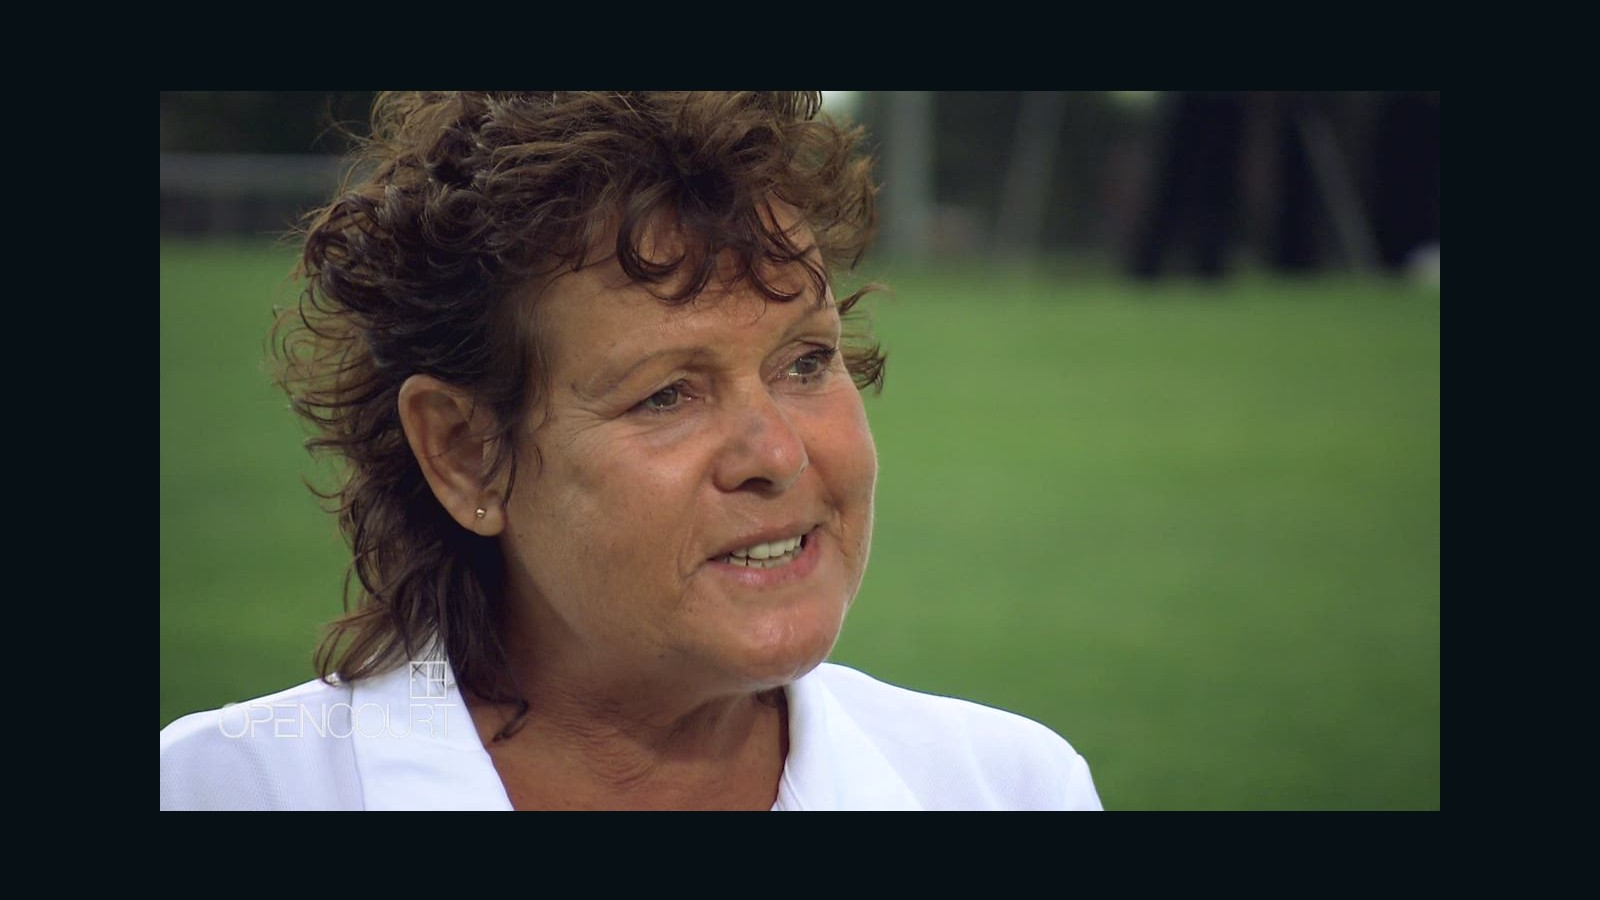 Evonne Goolagong Defying prejudice to be e a star CNN